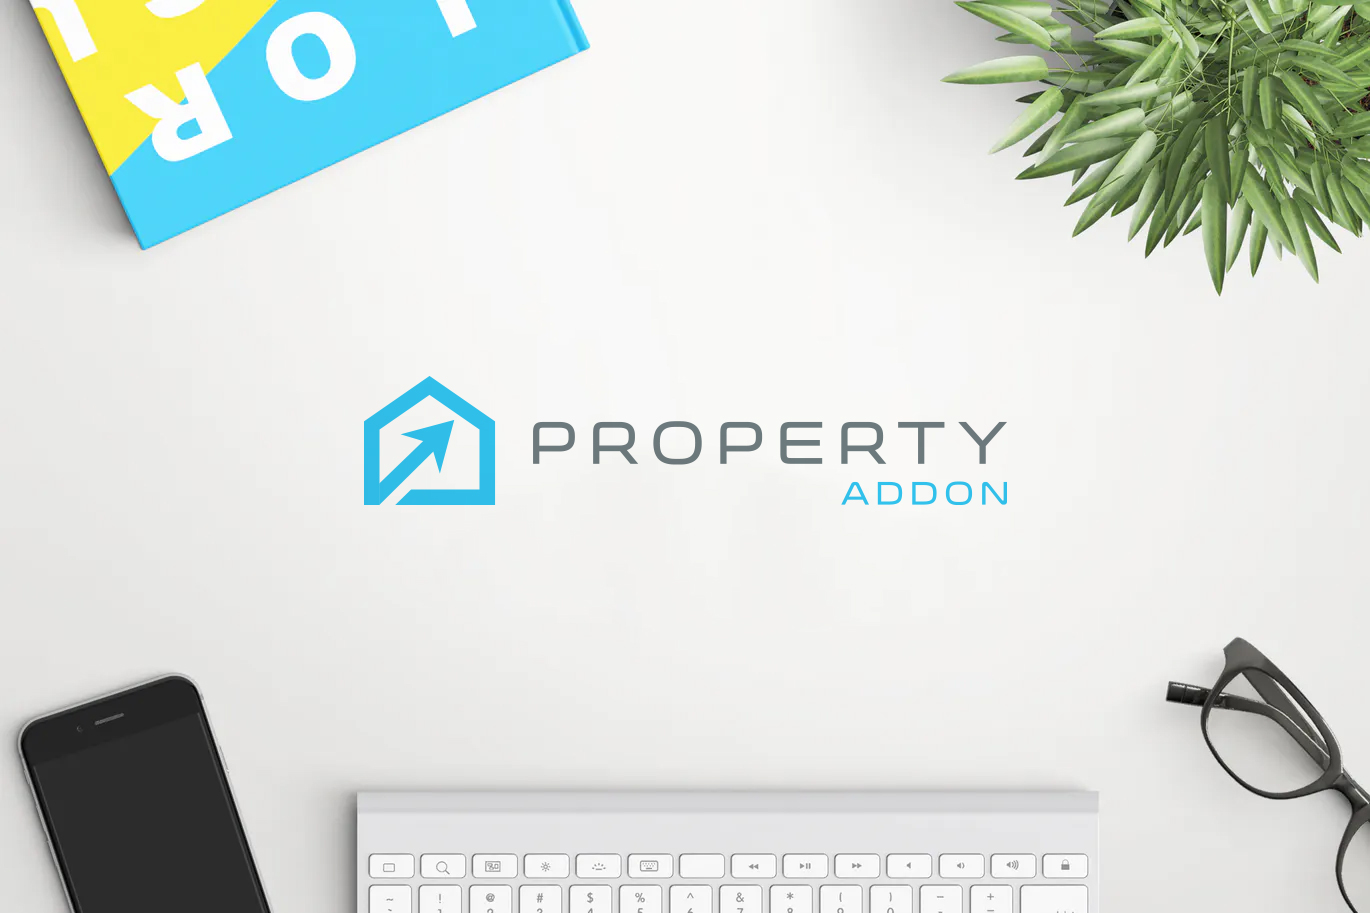 Property Addon Logo Design